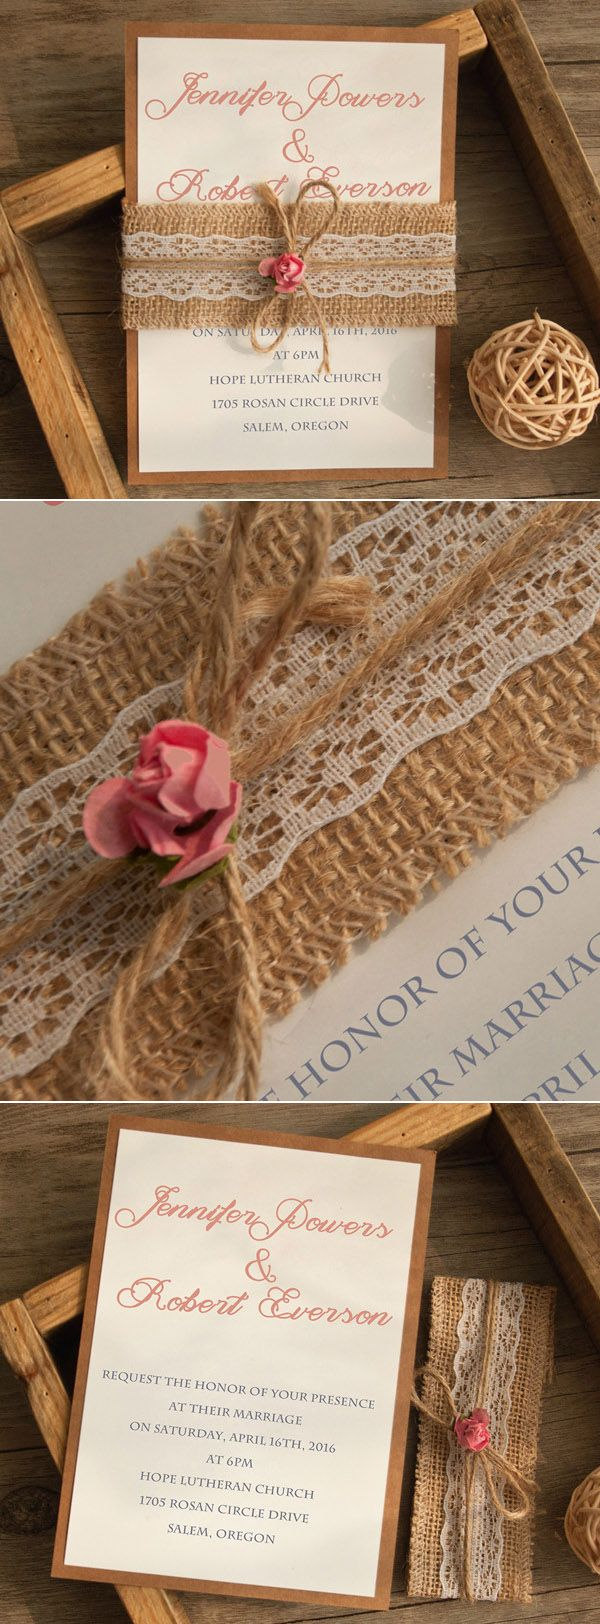 rustic lace and burlap wedding invitations with a touch of peach